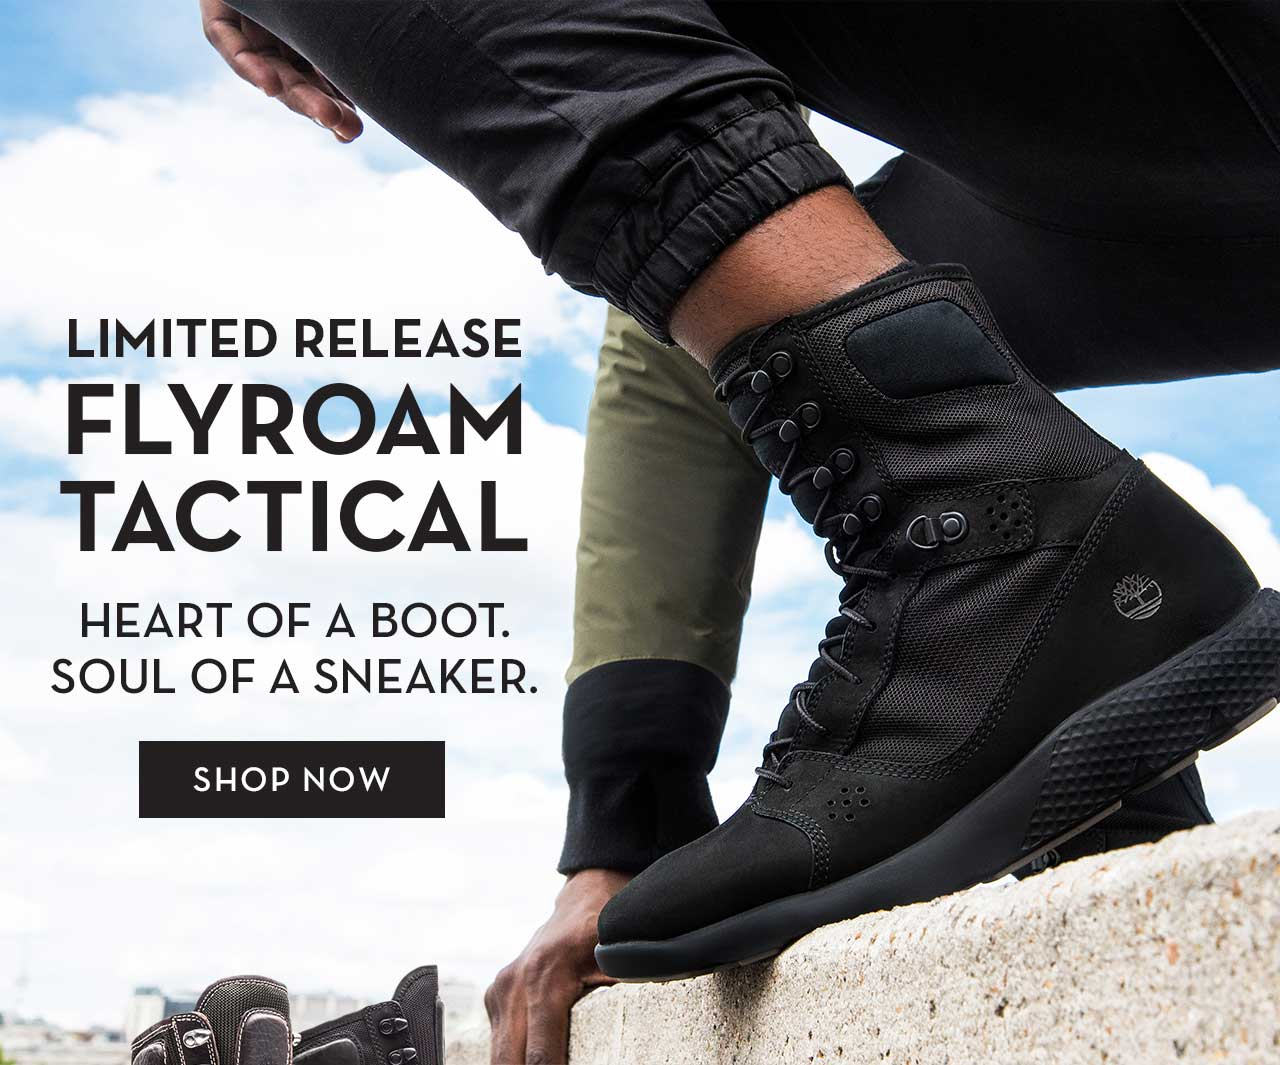 Limited Release FlyRoam Tactical Boots